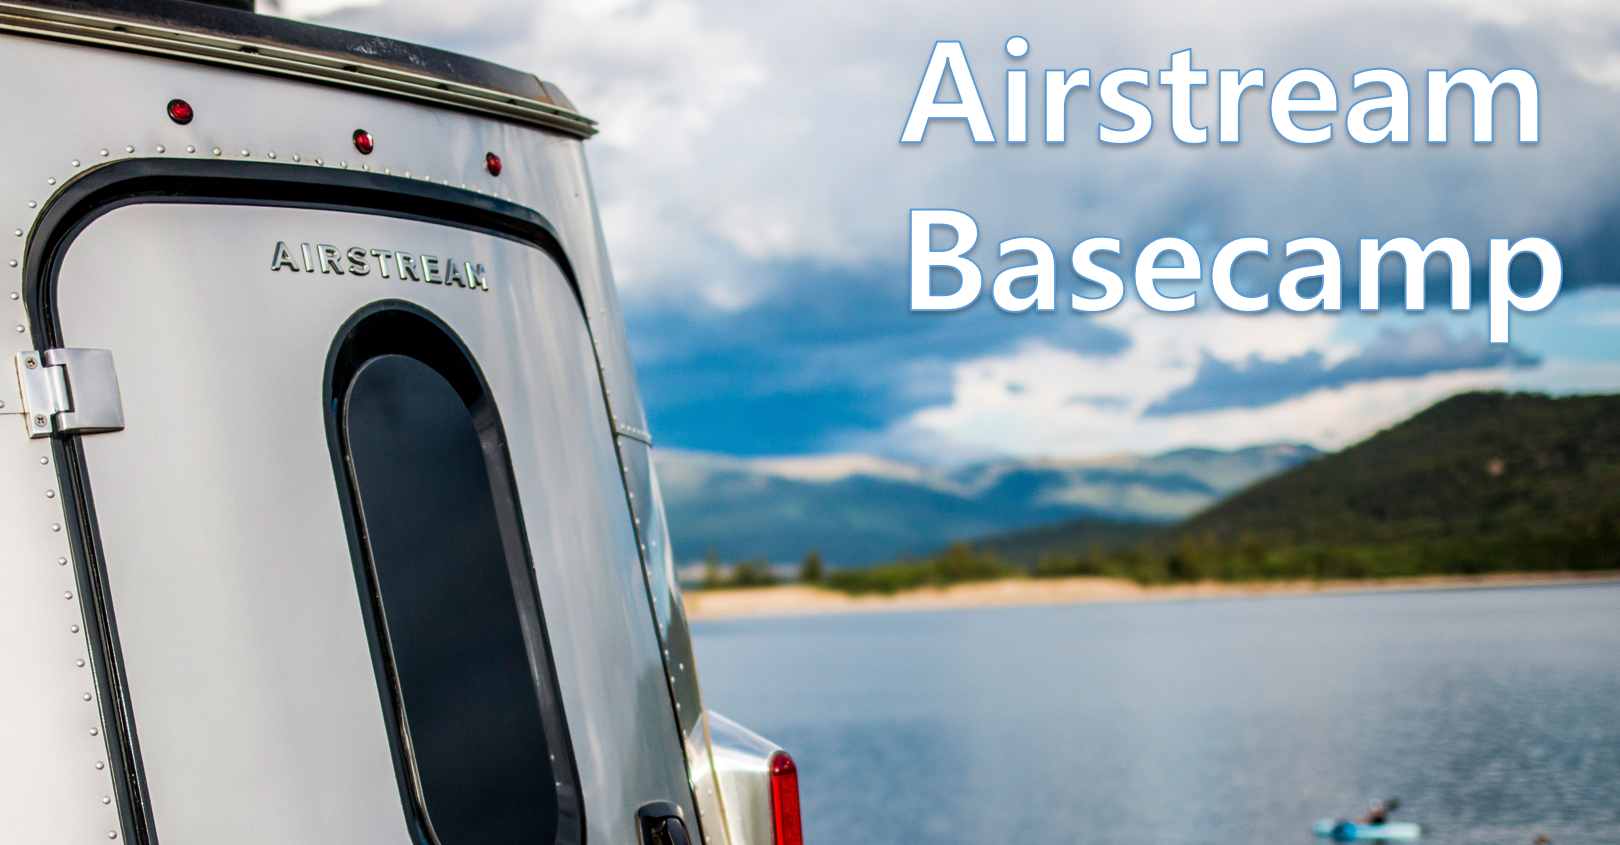 Airstream Basecamp - 2019 Spotlight on Design and Features